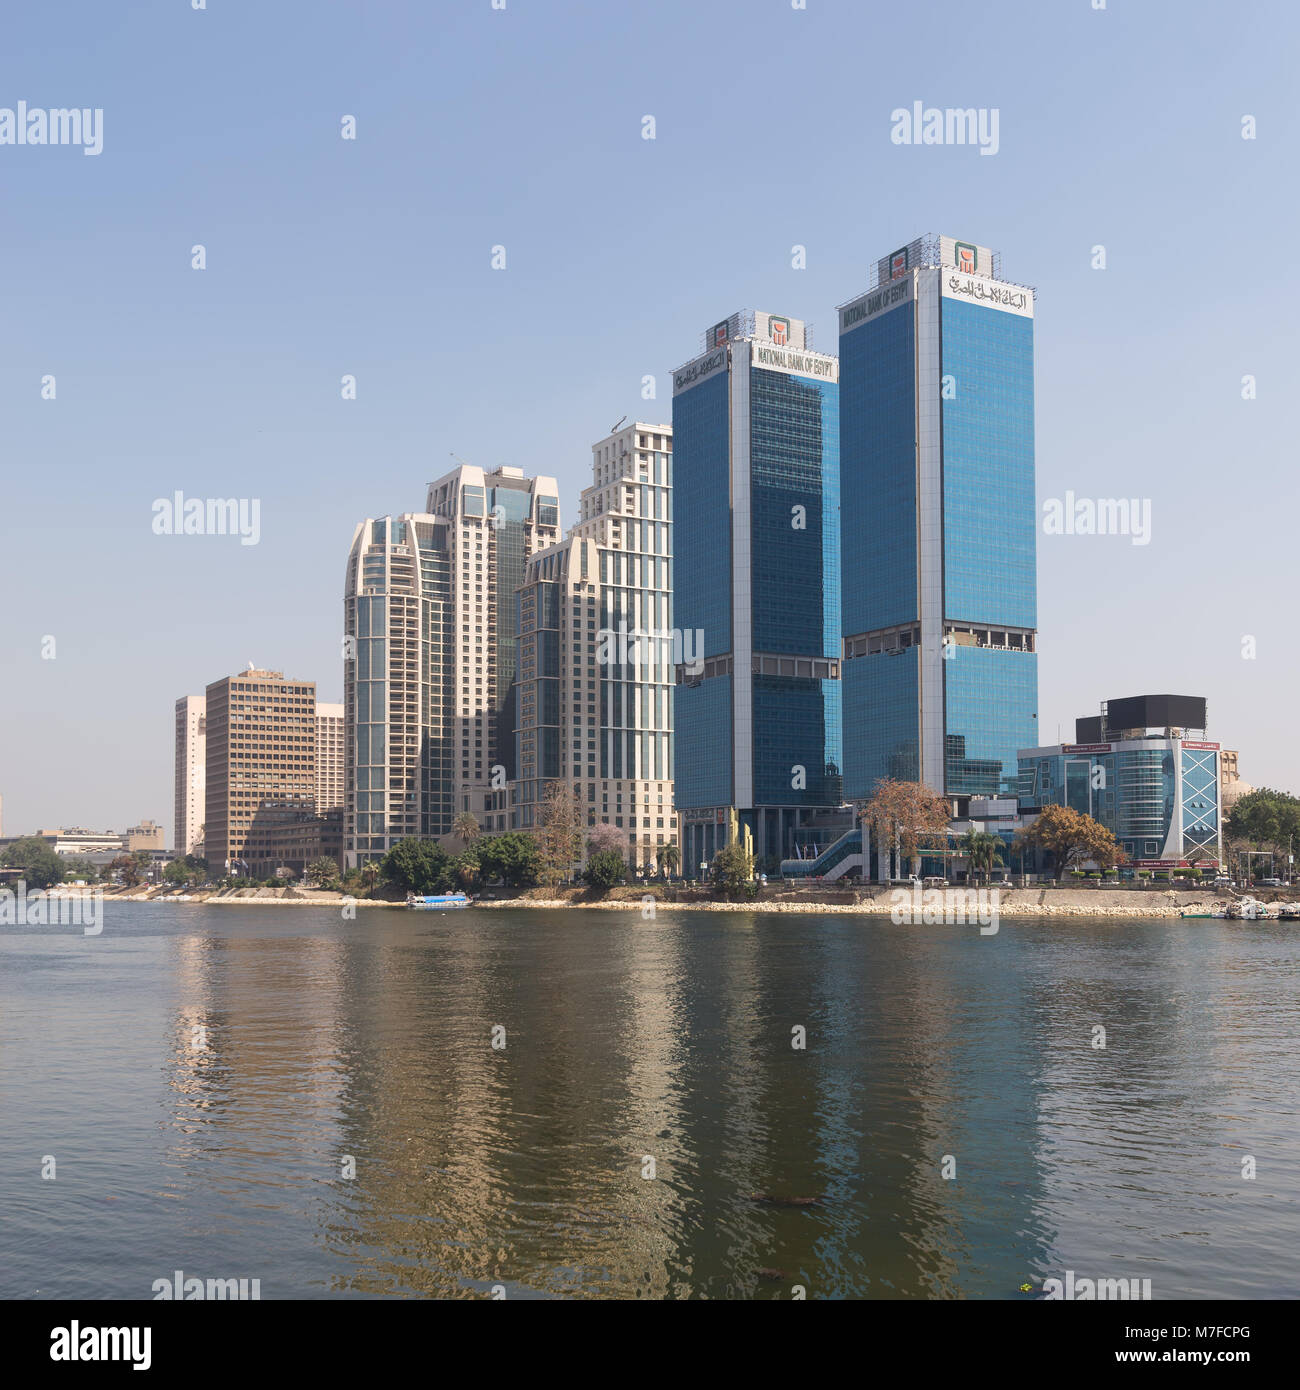 Cairo, Egypt - March 10, 2018: City view from River Nile overlooking Head Office of National Bank of Egypt and St. - Stock Image